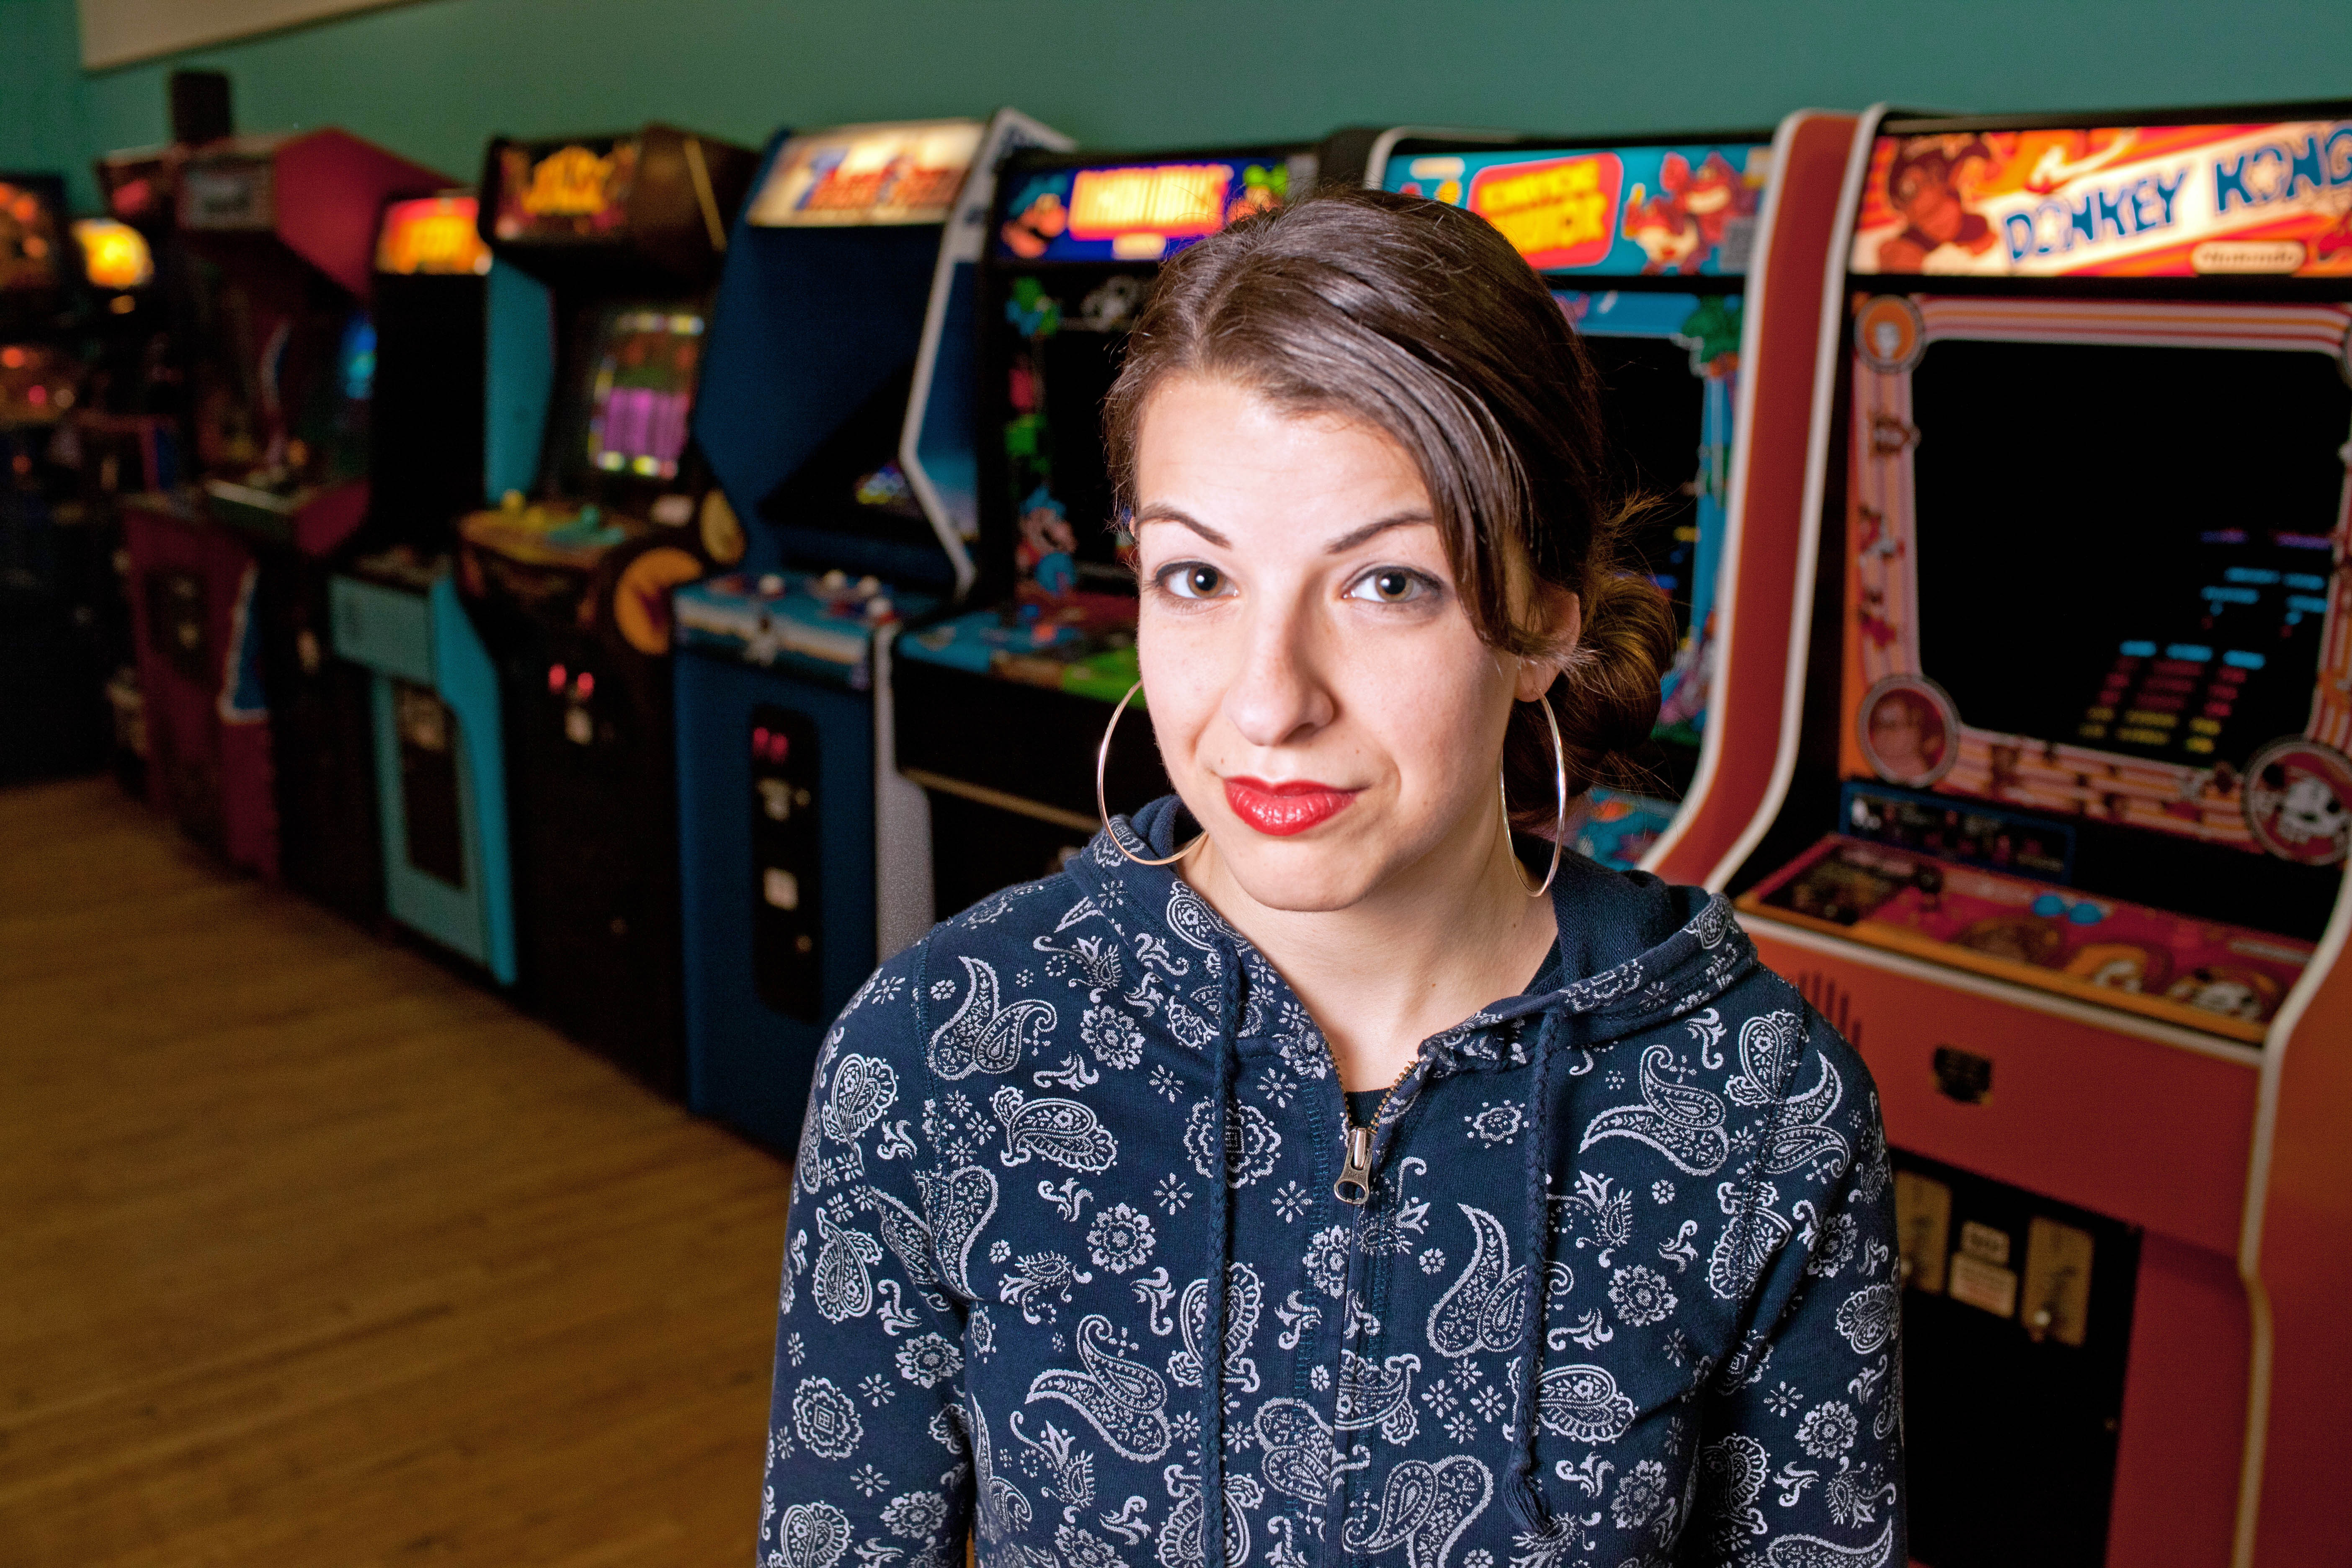 This Jan. 17, 2013, photo provided by Anita Sarkeesian shows her with vintage video game machines in MInneapolis.